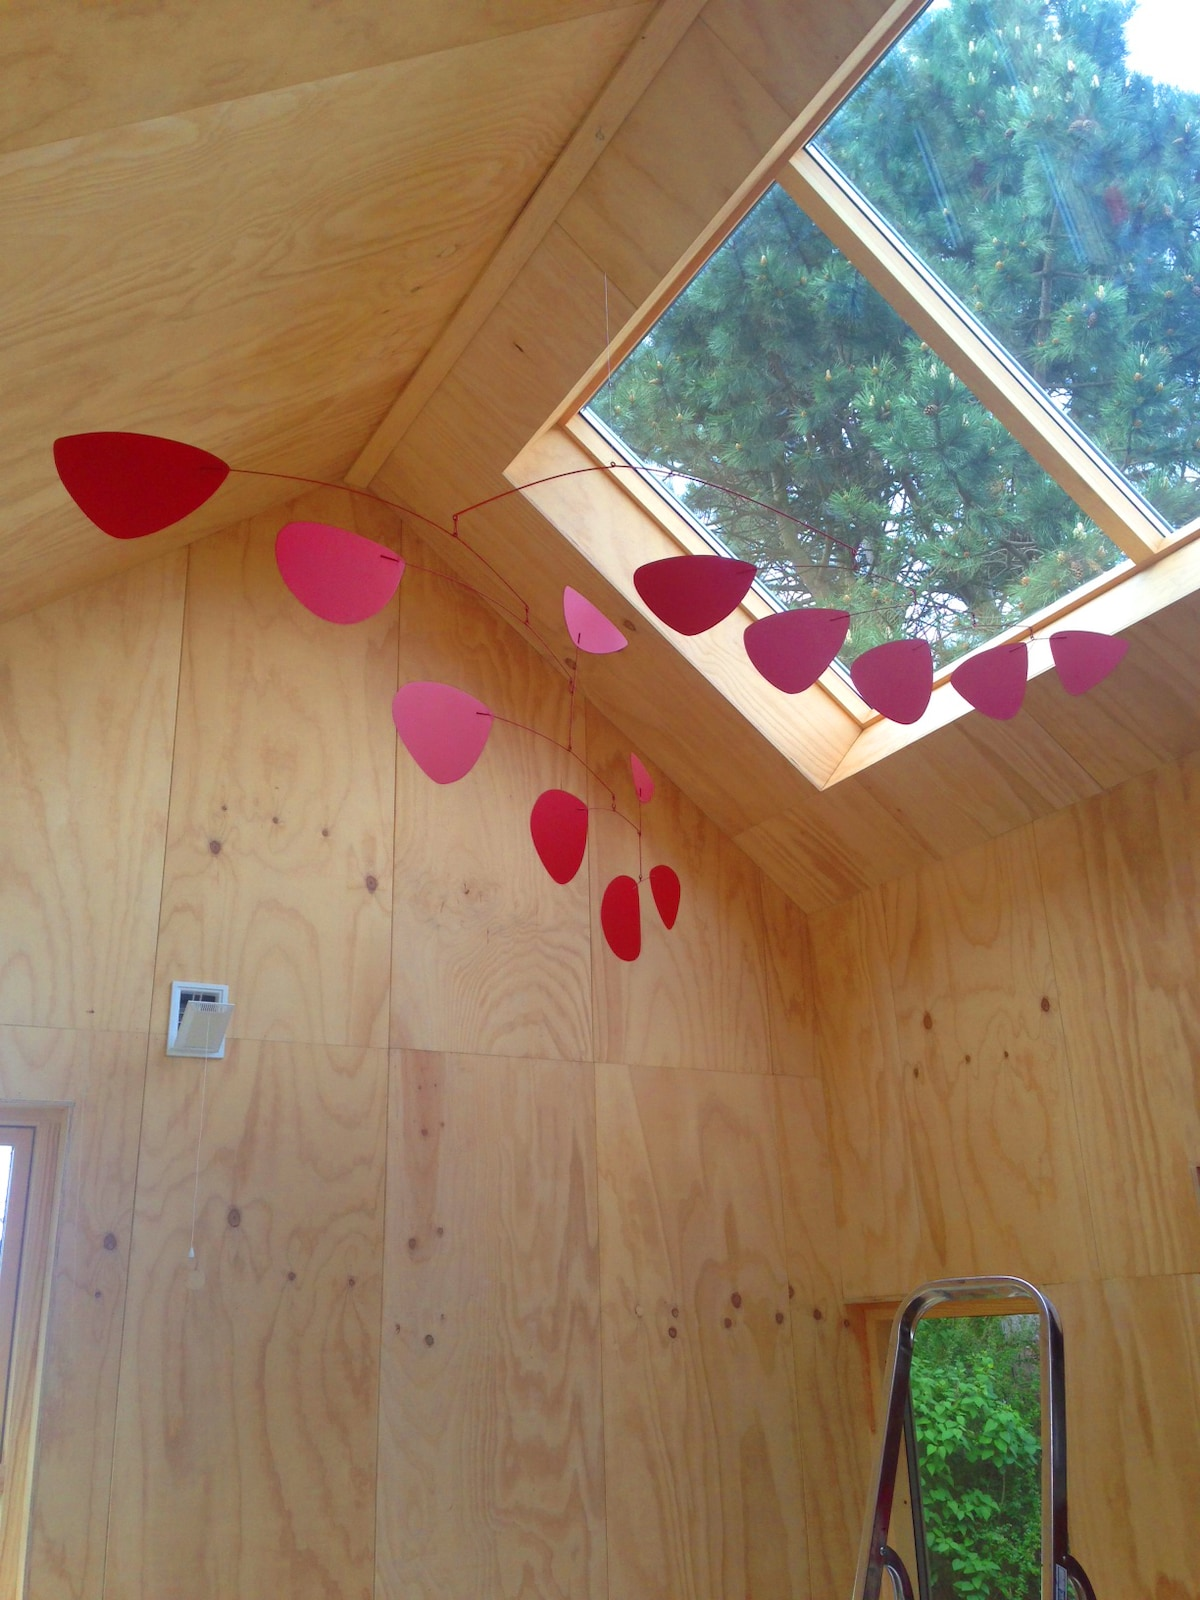 Our big 'Calder' mobile and the huge skylight windows